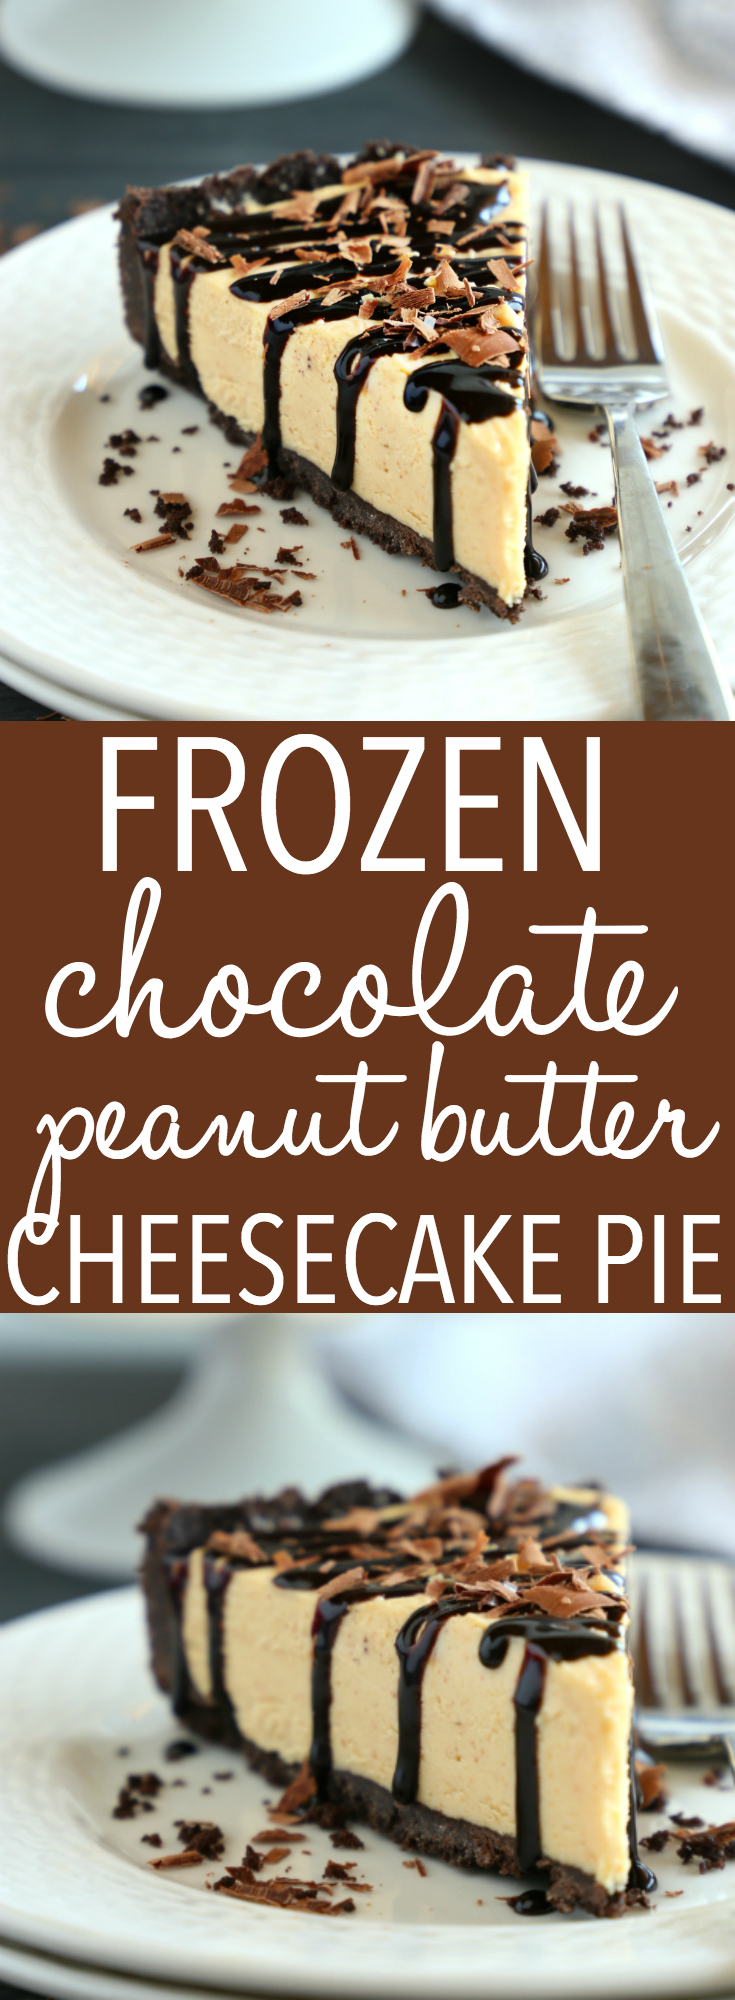 This Frozen Chocolate Peanut Butter Cheesecake Pie is the best ultra-creamy summer dessert for chocolate and peanut butter lovers! Make it in minutes with only a few simple ingredients!! Recipe from thebusybaker.ca! #chocolatepeanutbutterdessert #summerdessert #easysummerdessert #frozenpie via @busybakerblog